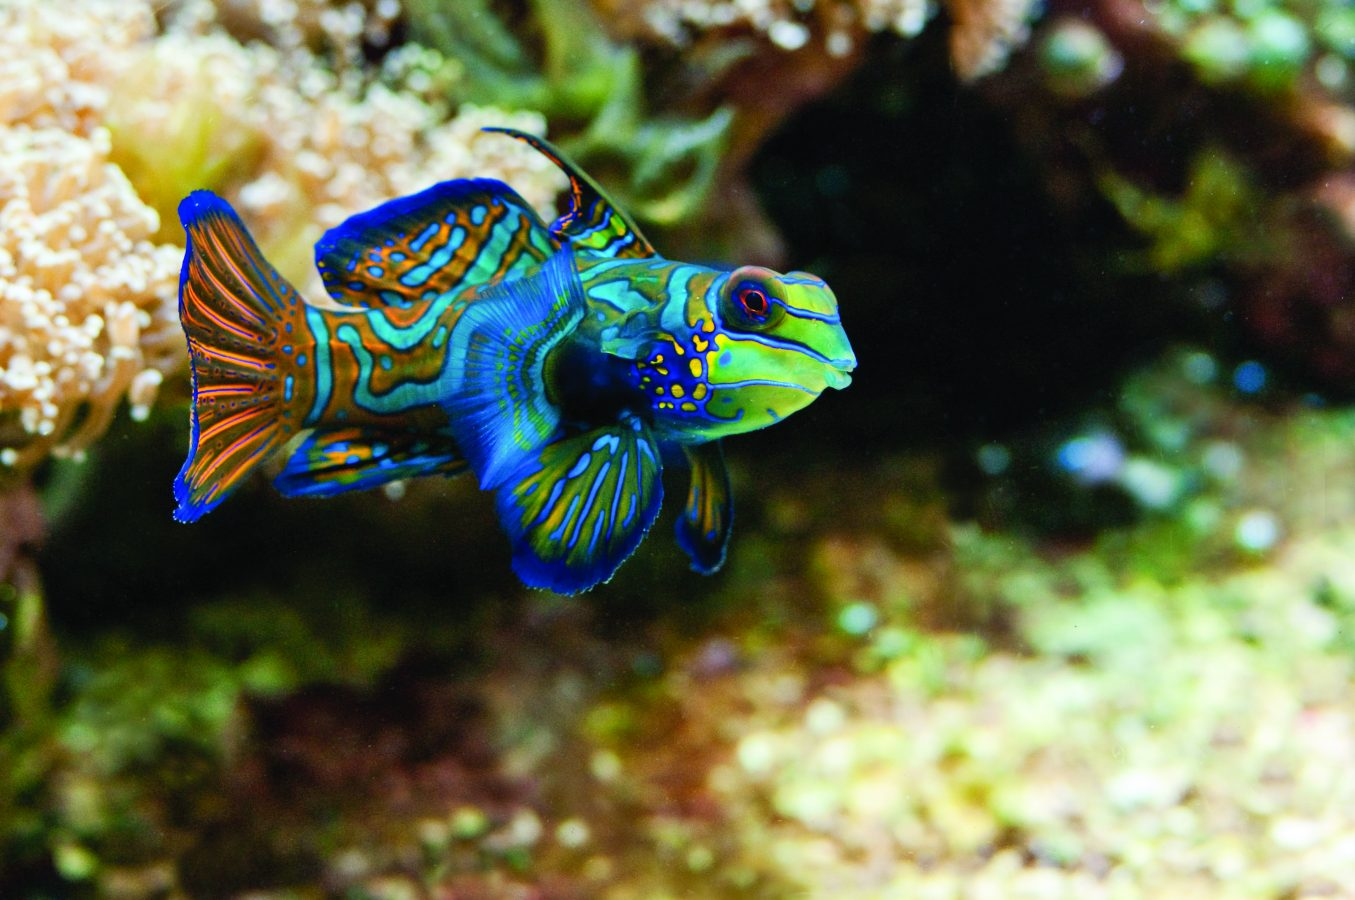 Mandarin fish swims through exhibit